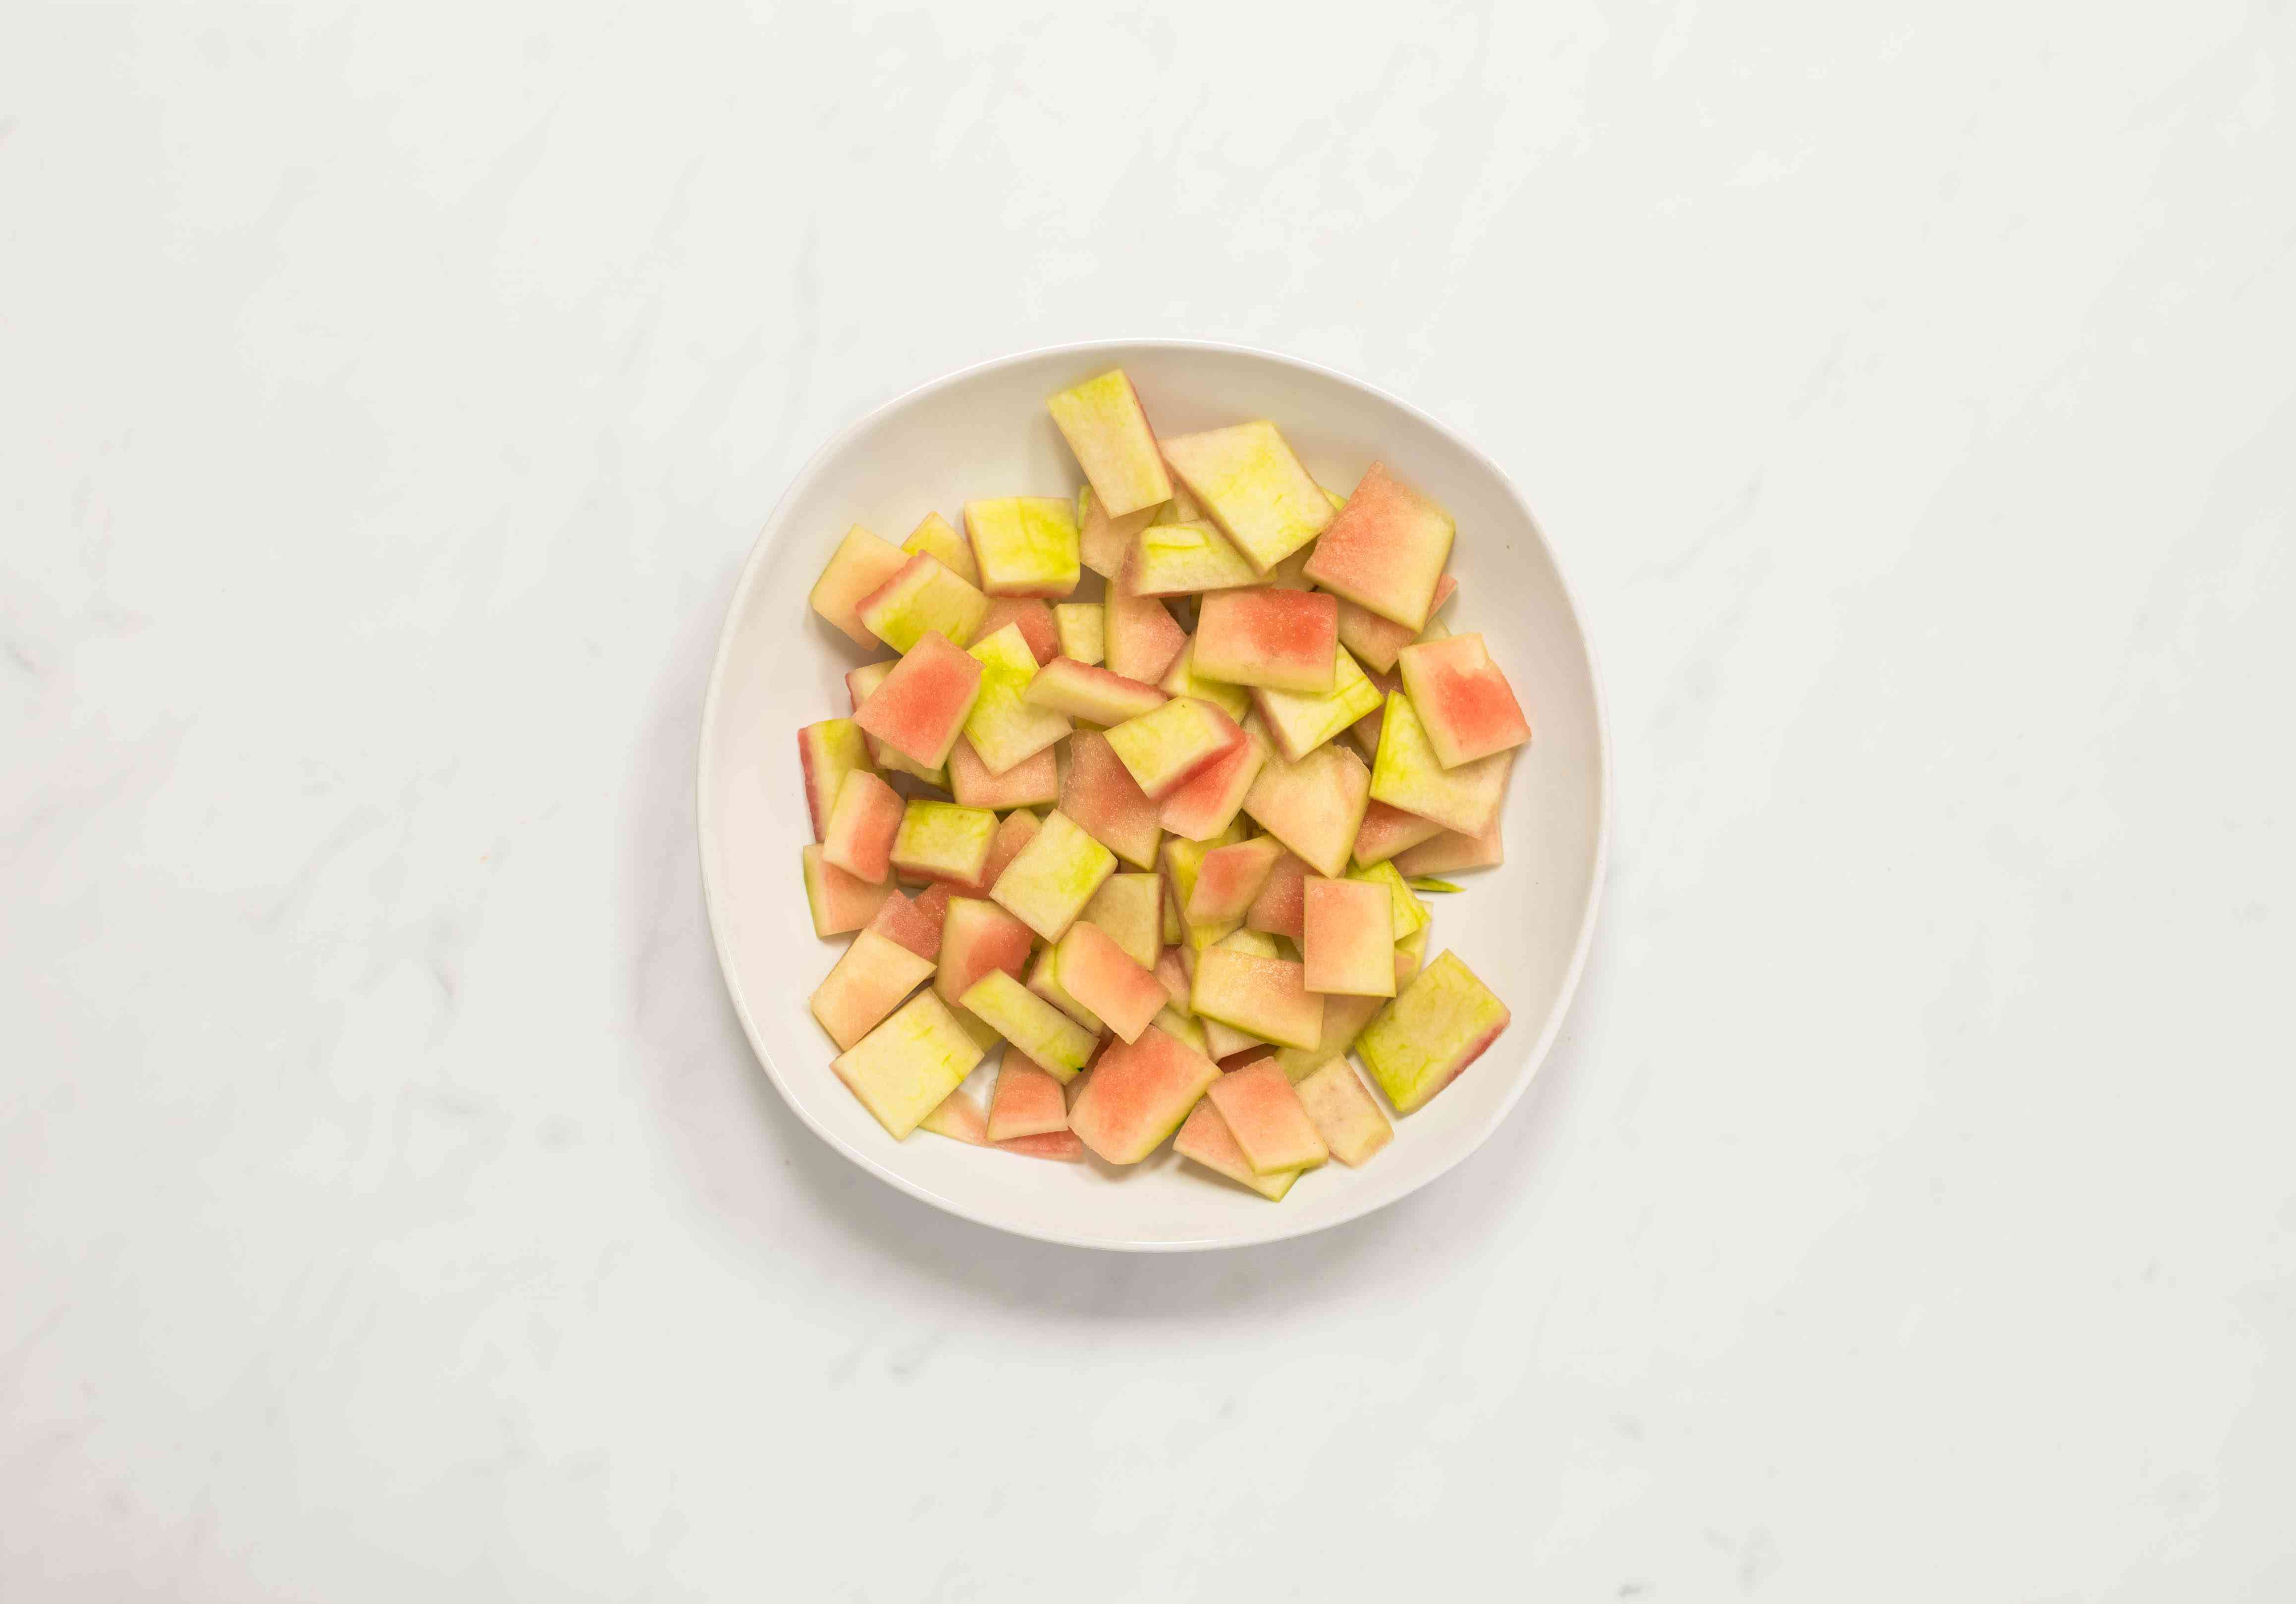 Trimmed and cut watermelon rind in a bowl